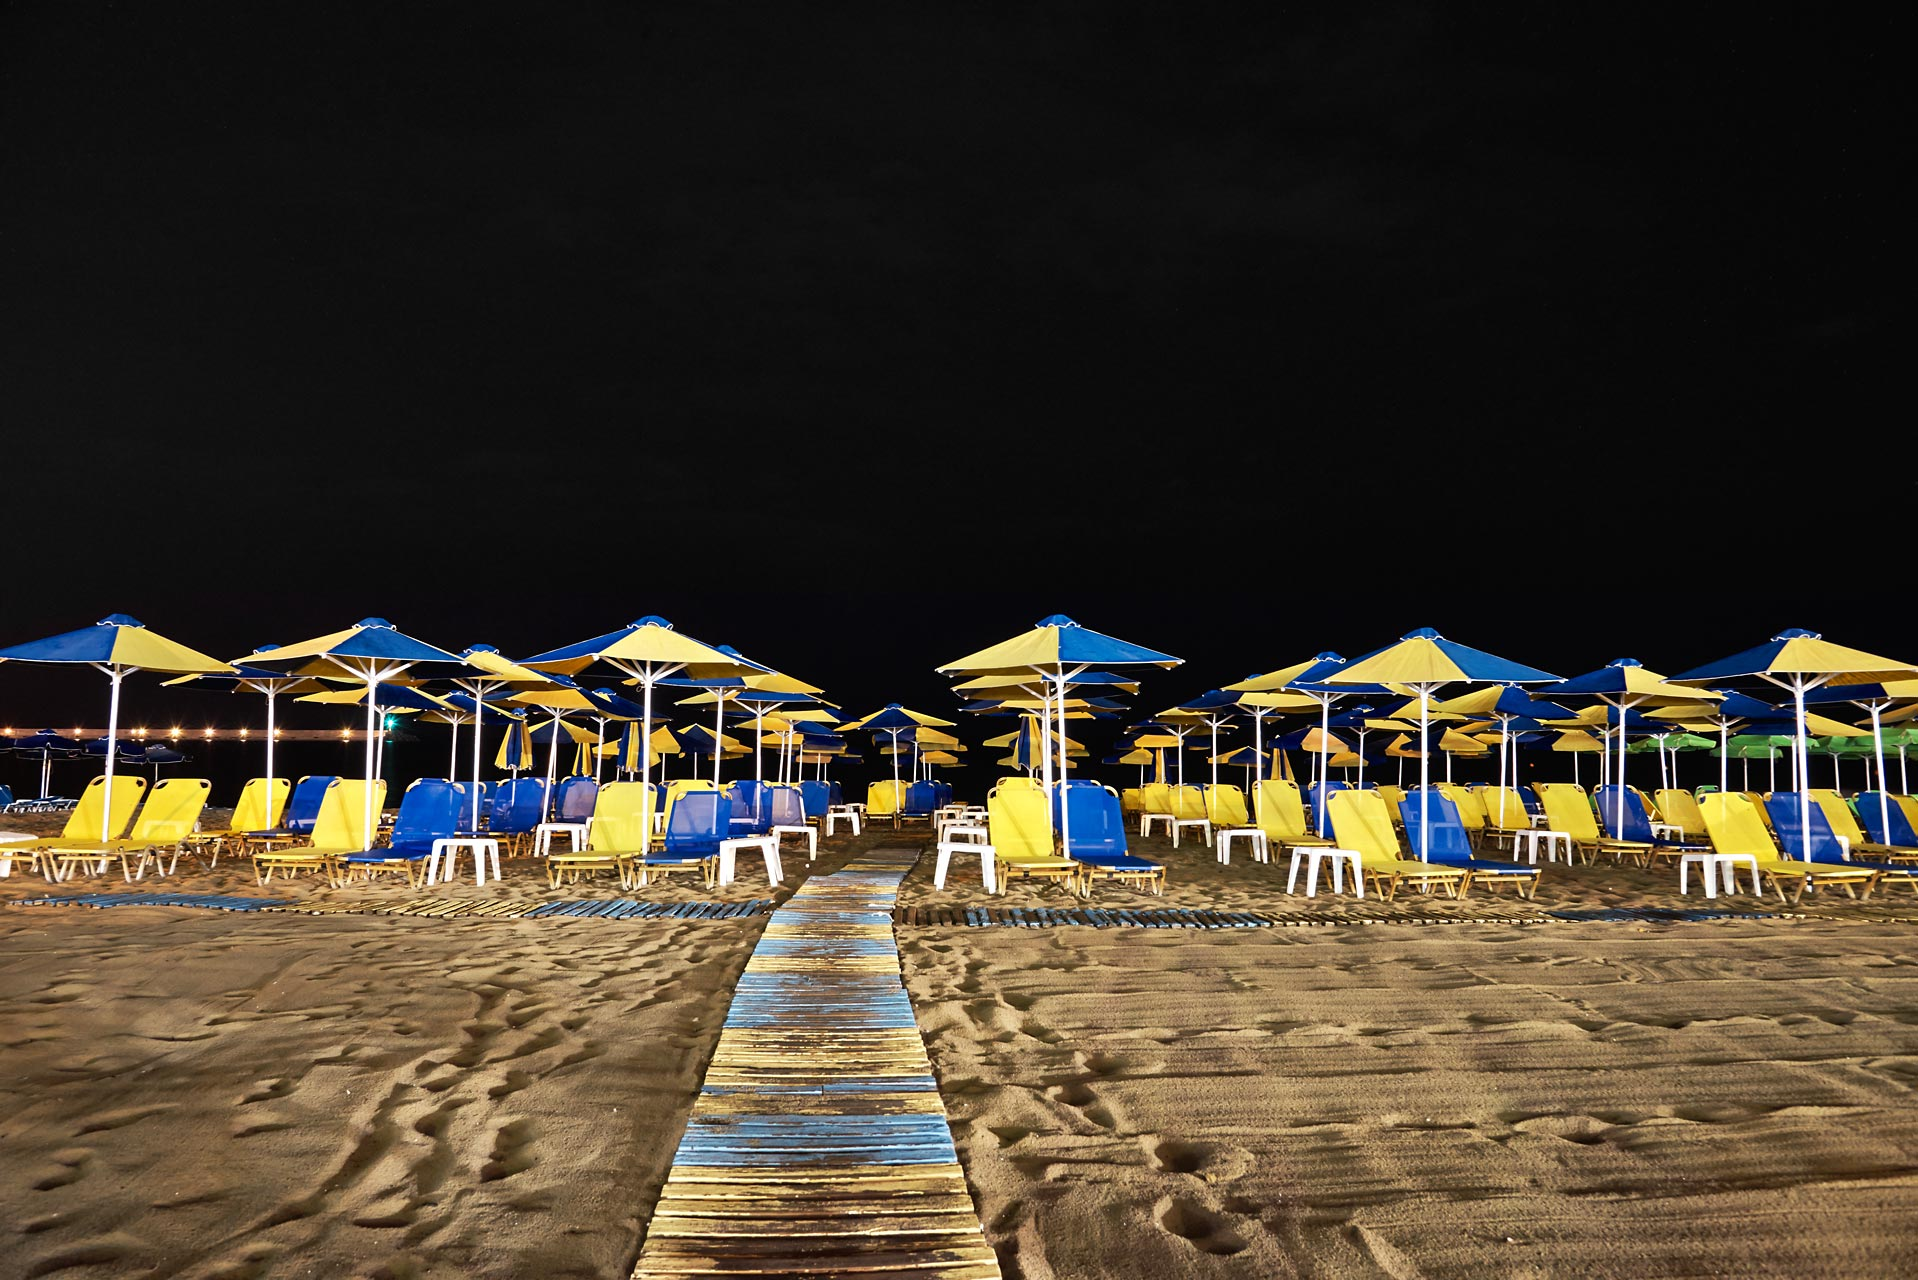 Sabine-Scheer-rethmno-beach-night